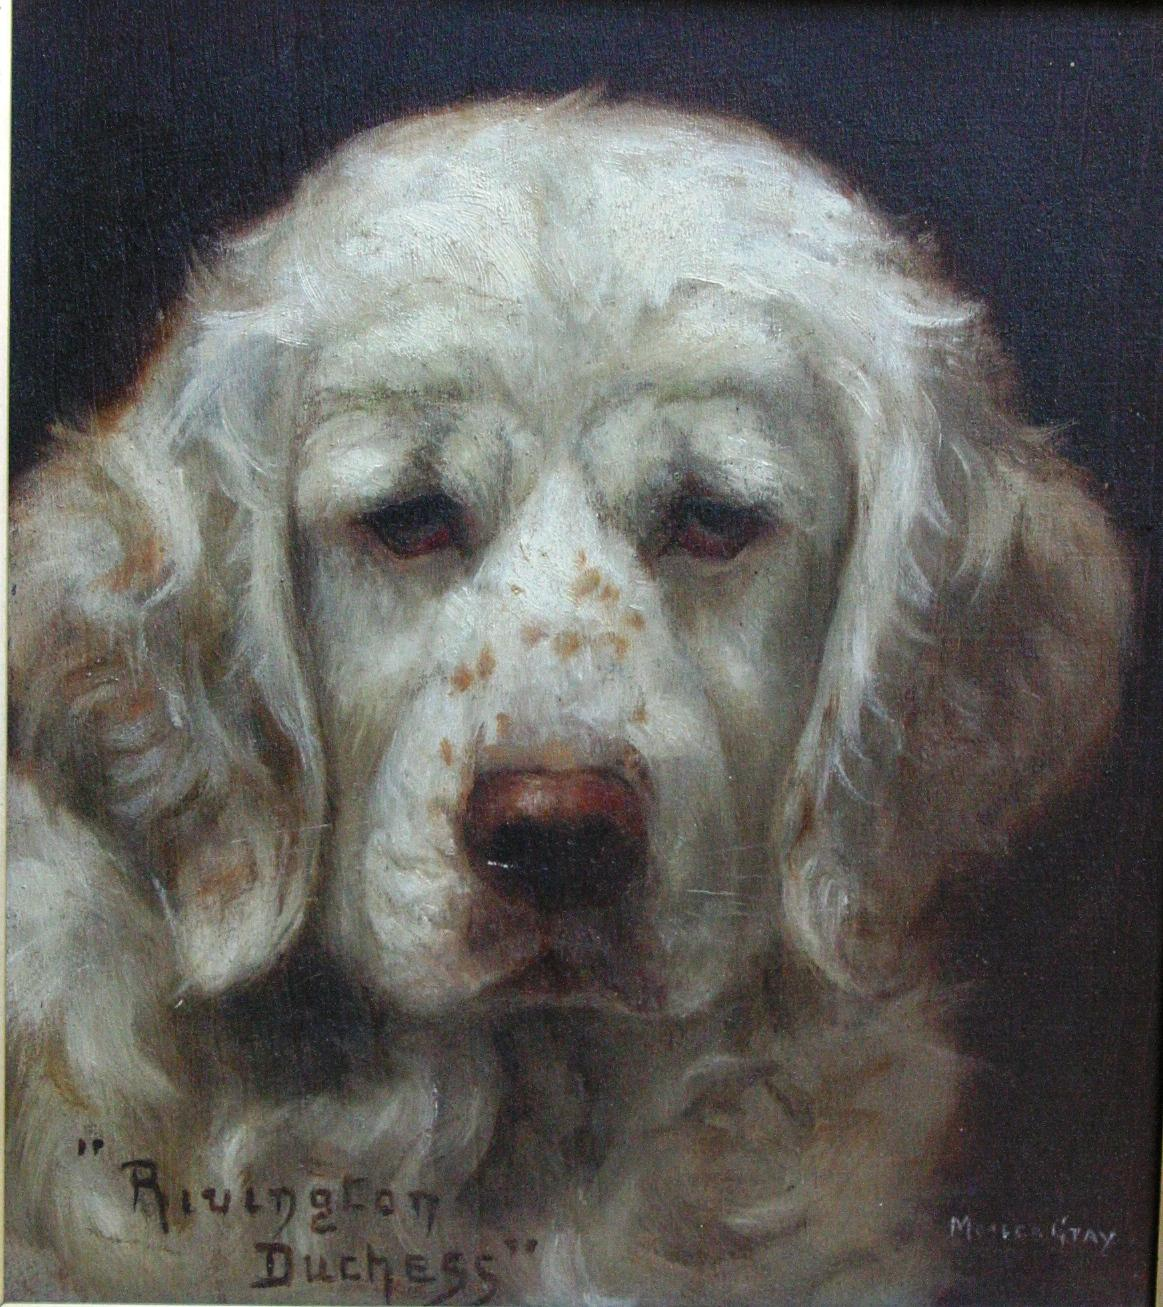 Click to see full size: Clumber Spaniel by Monica Gray (exh 1903-1919)- Clumber Spaniel by Monica Gray (exh 1903-1919)